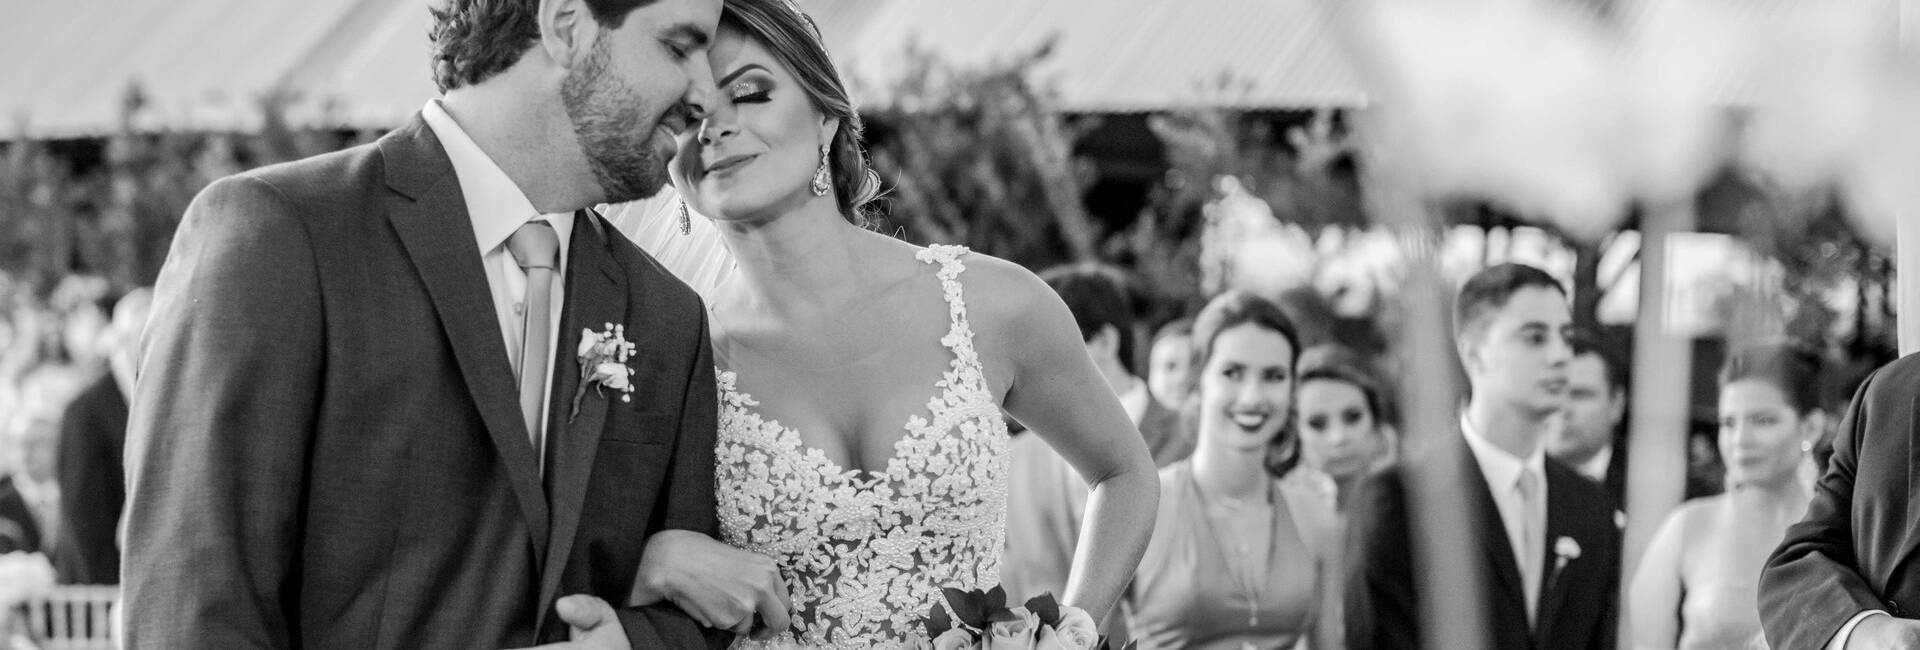 Wedding Day de Kenia + Douglas